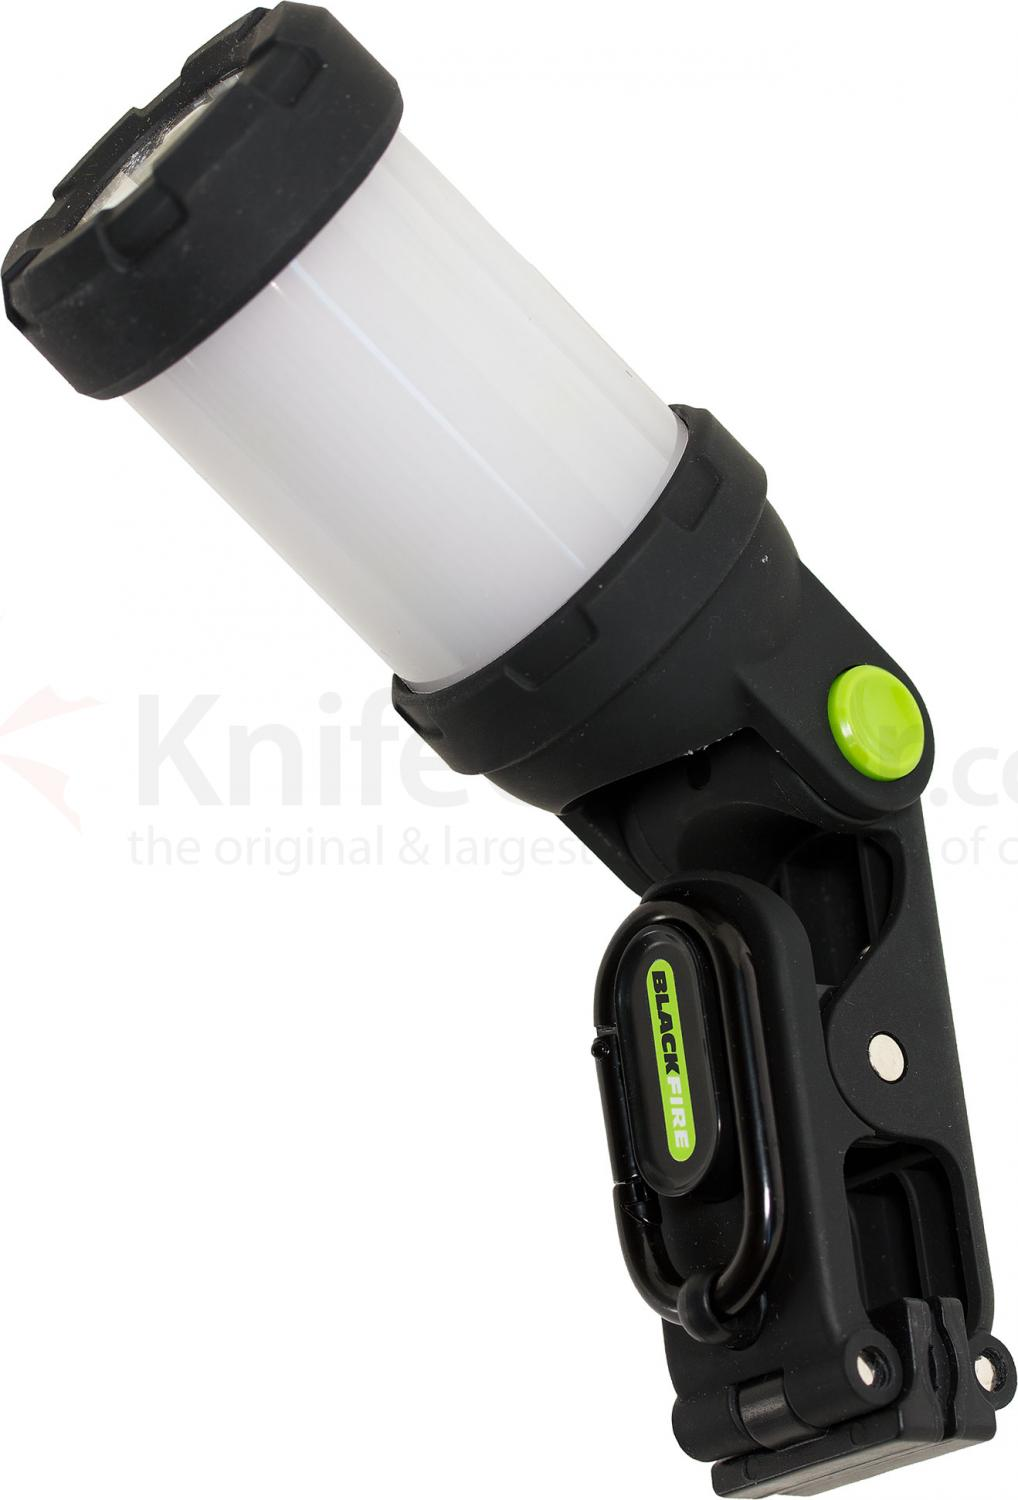 Blackfire Clamplight Backpack LED Flashlight, Black, 125 Max Lumens (BBM920)